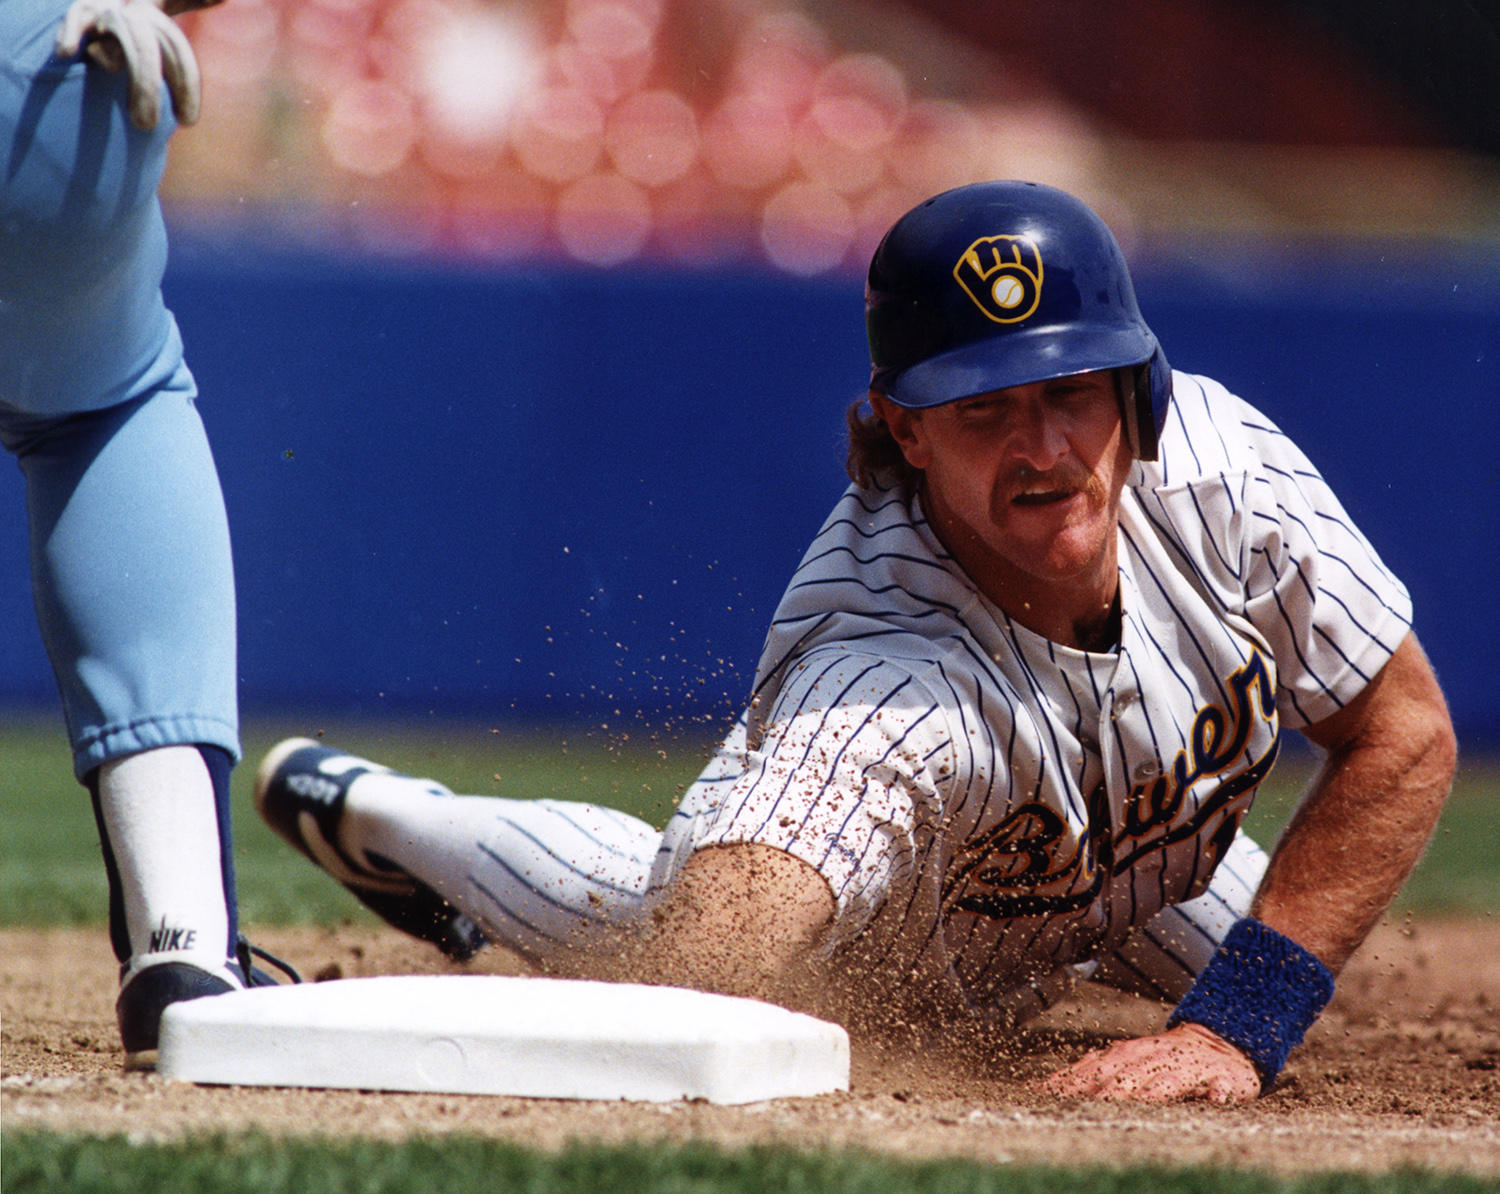 In 1982, Robin Yount led all of baseball in total bases with 367. (National Baseball Hall of Fame)